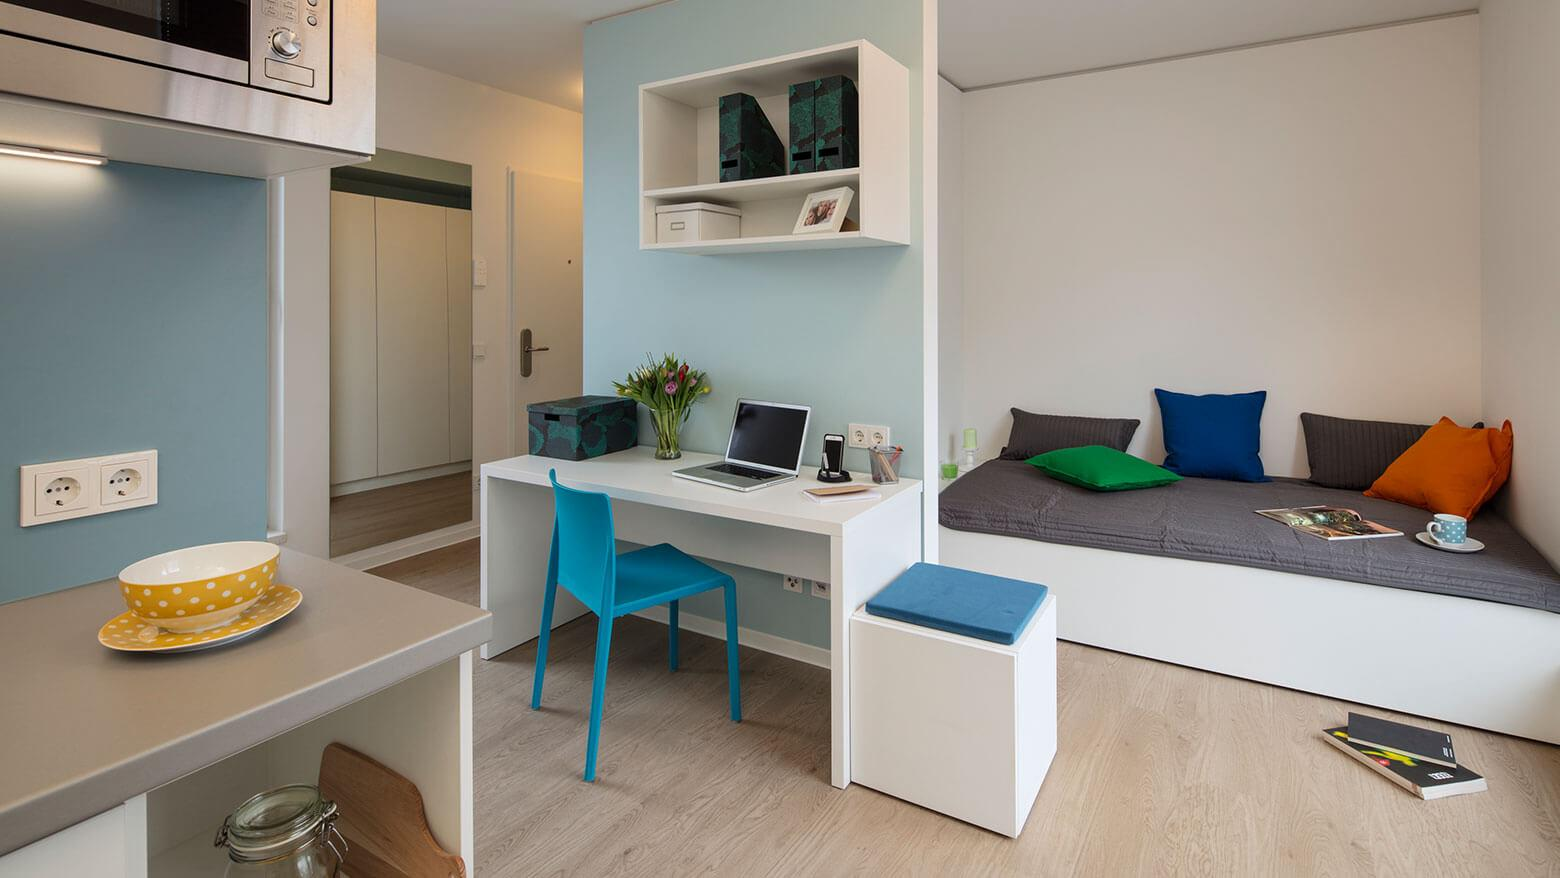 Stundenten apartment with kitchen in the Quartillion Cologne